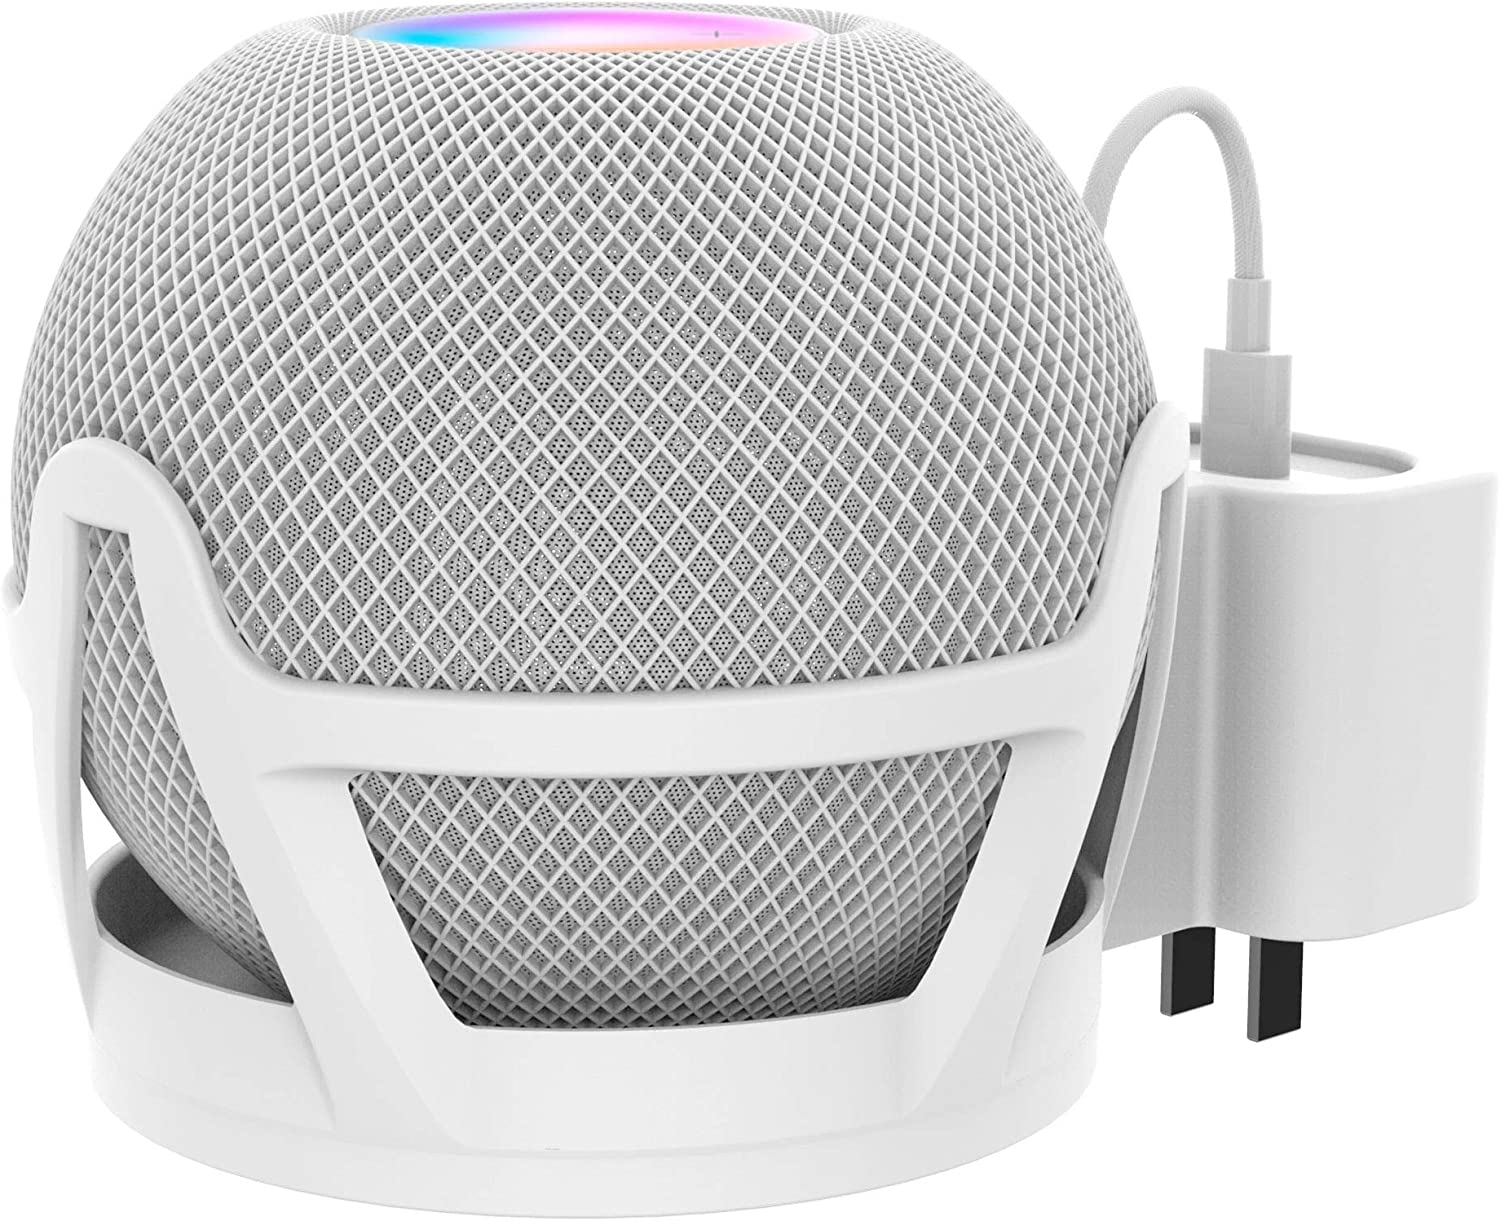 The New Homepod Max 49% OFF Mini Wall-Mounted Suitable Hom Bracket Wall Super sale period limited for